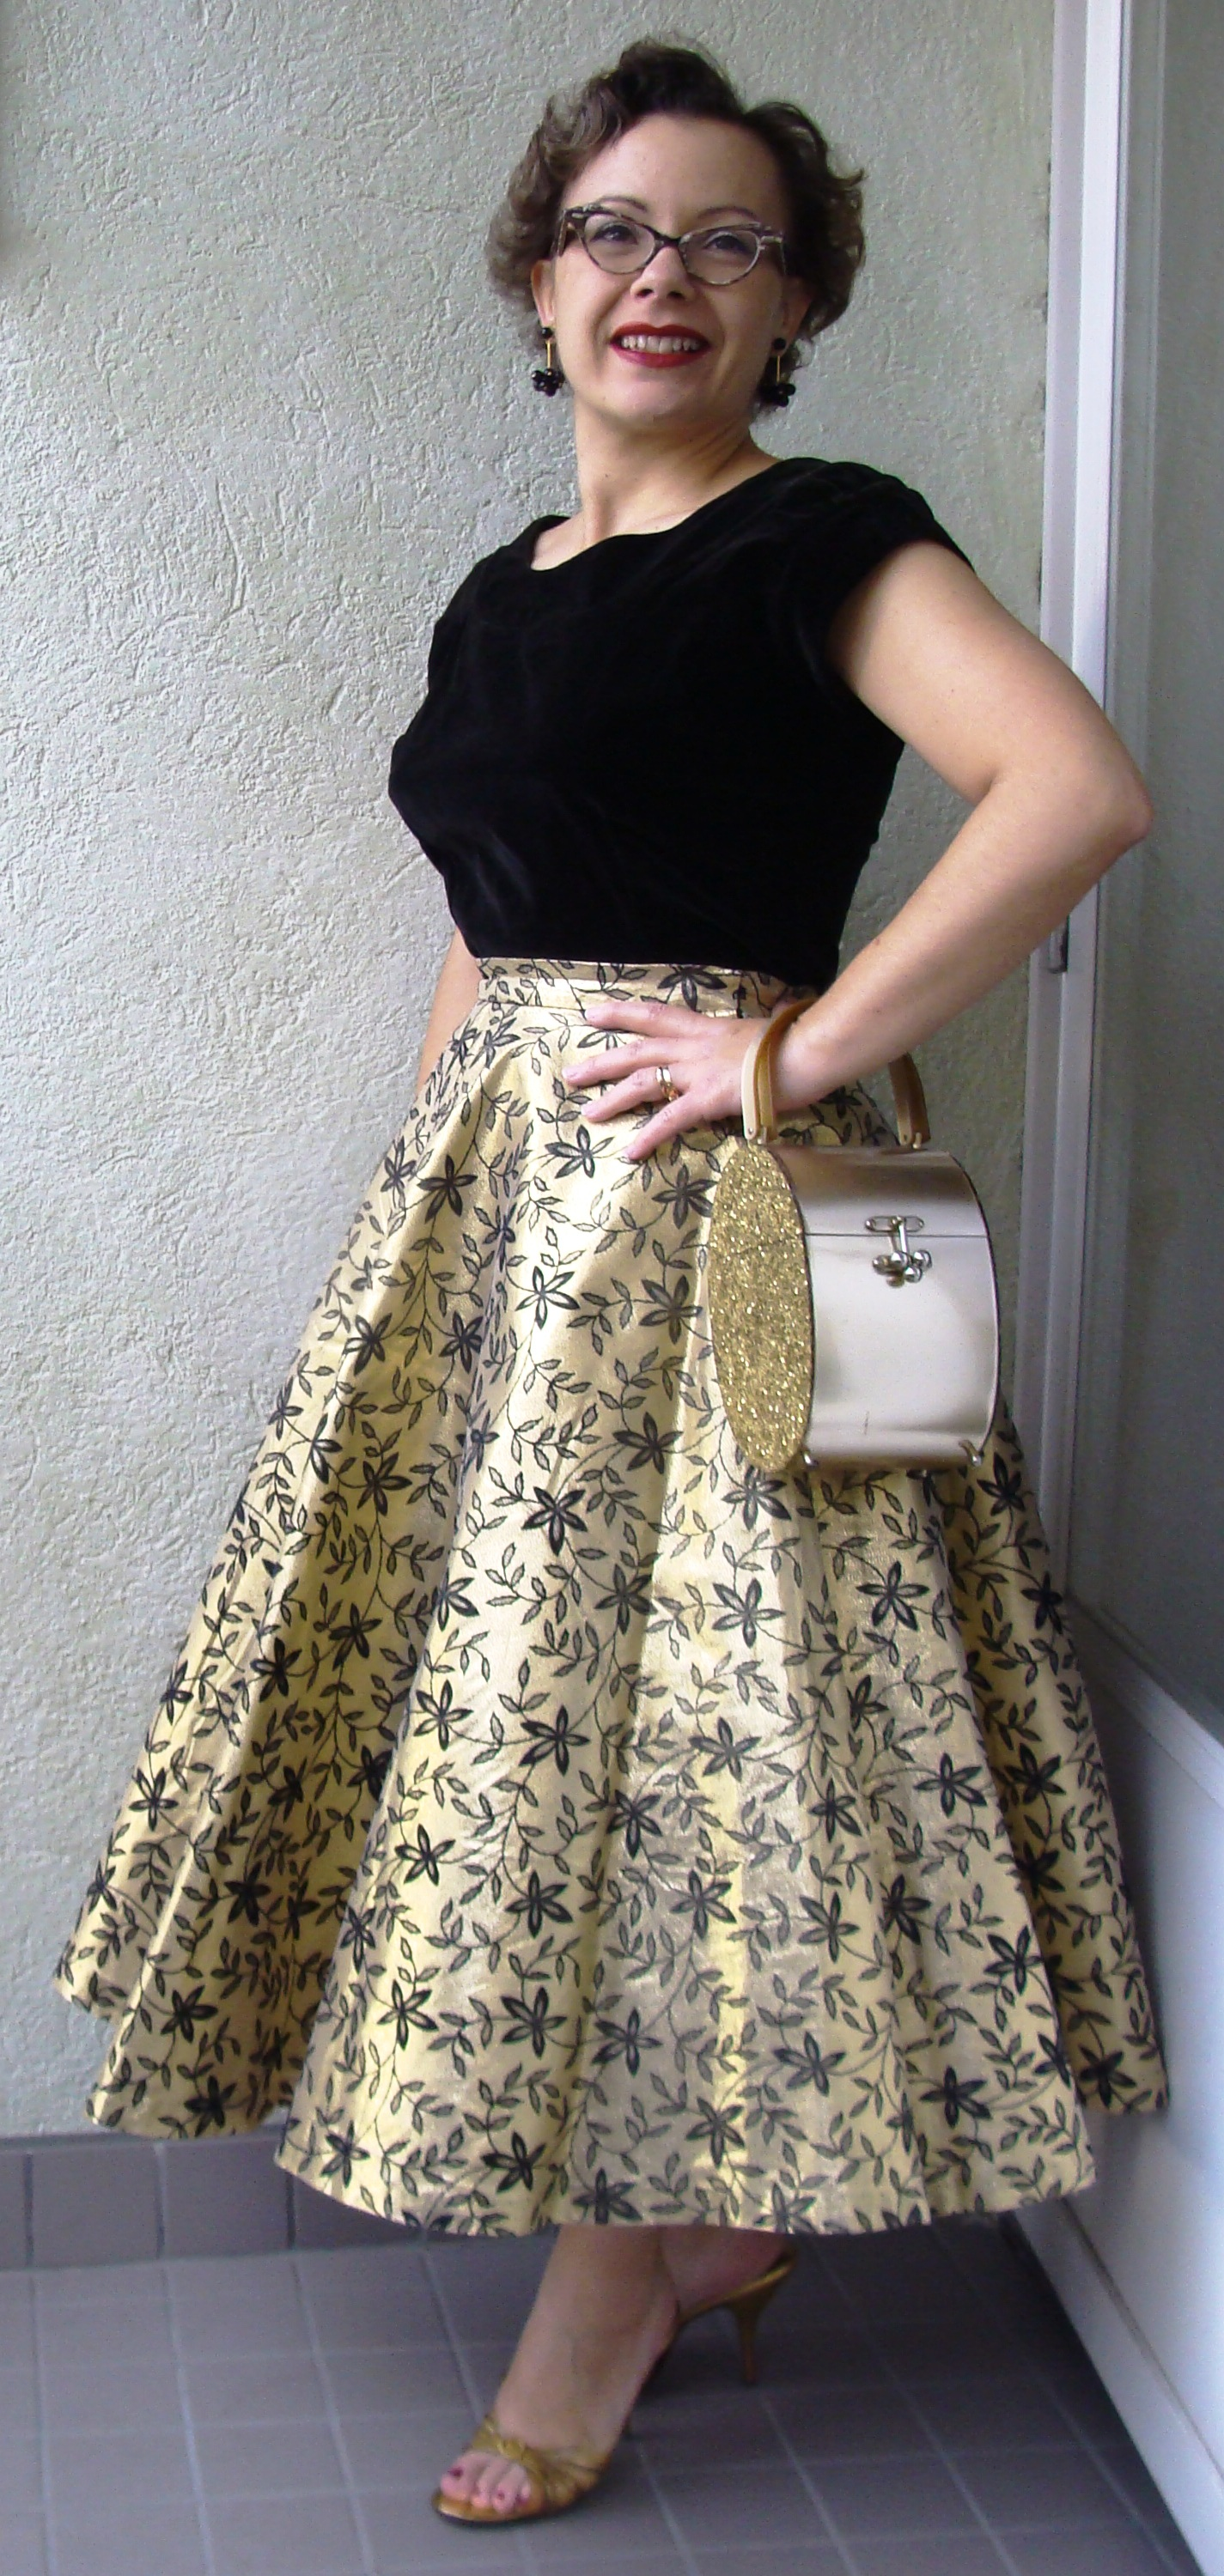 www.fintage.net blogi wp-content uploads black-and-gold-skirt.jpg ...